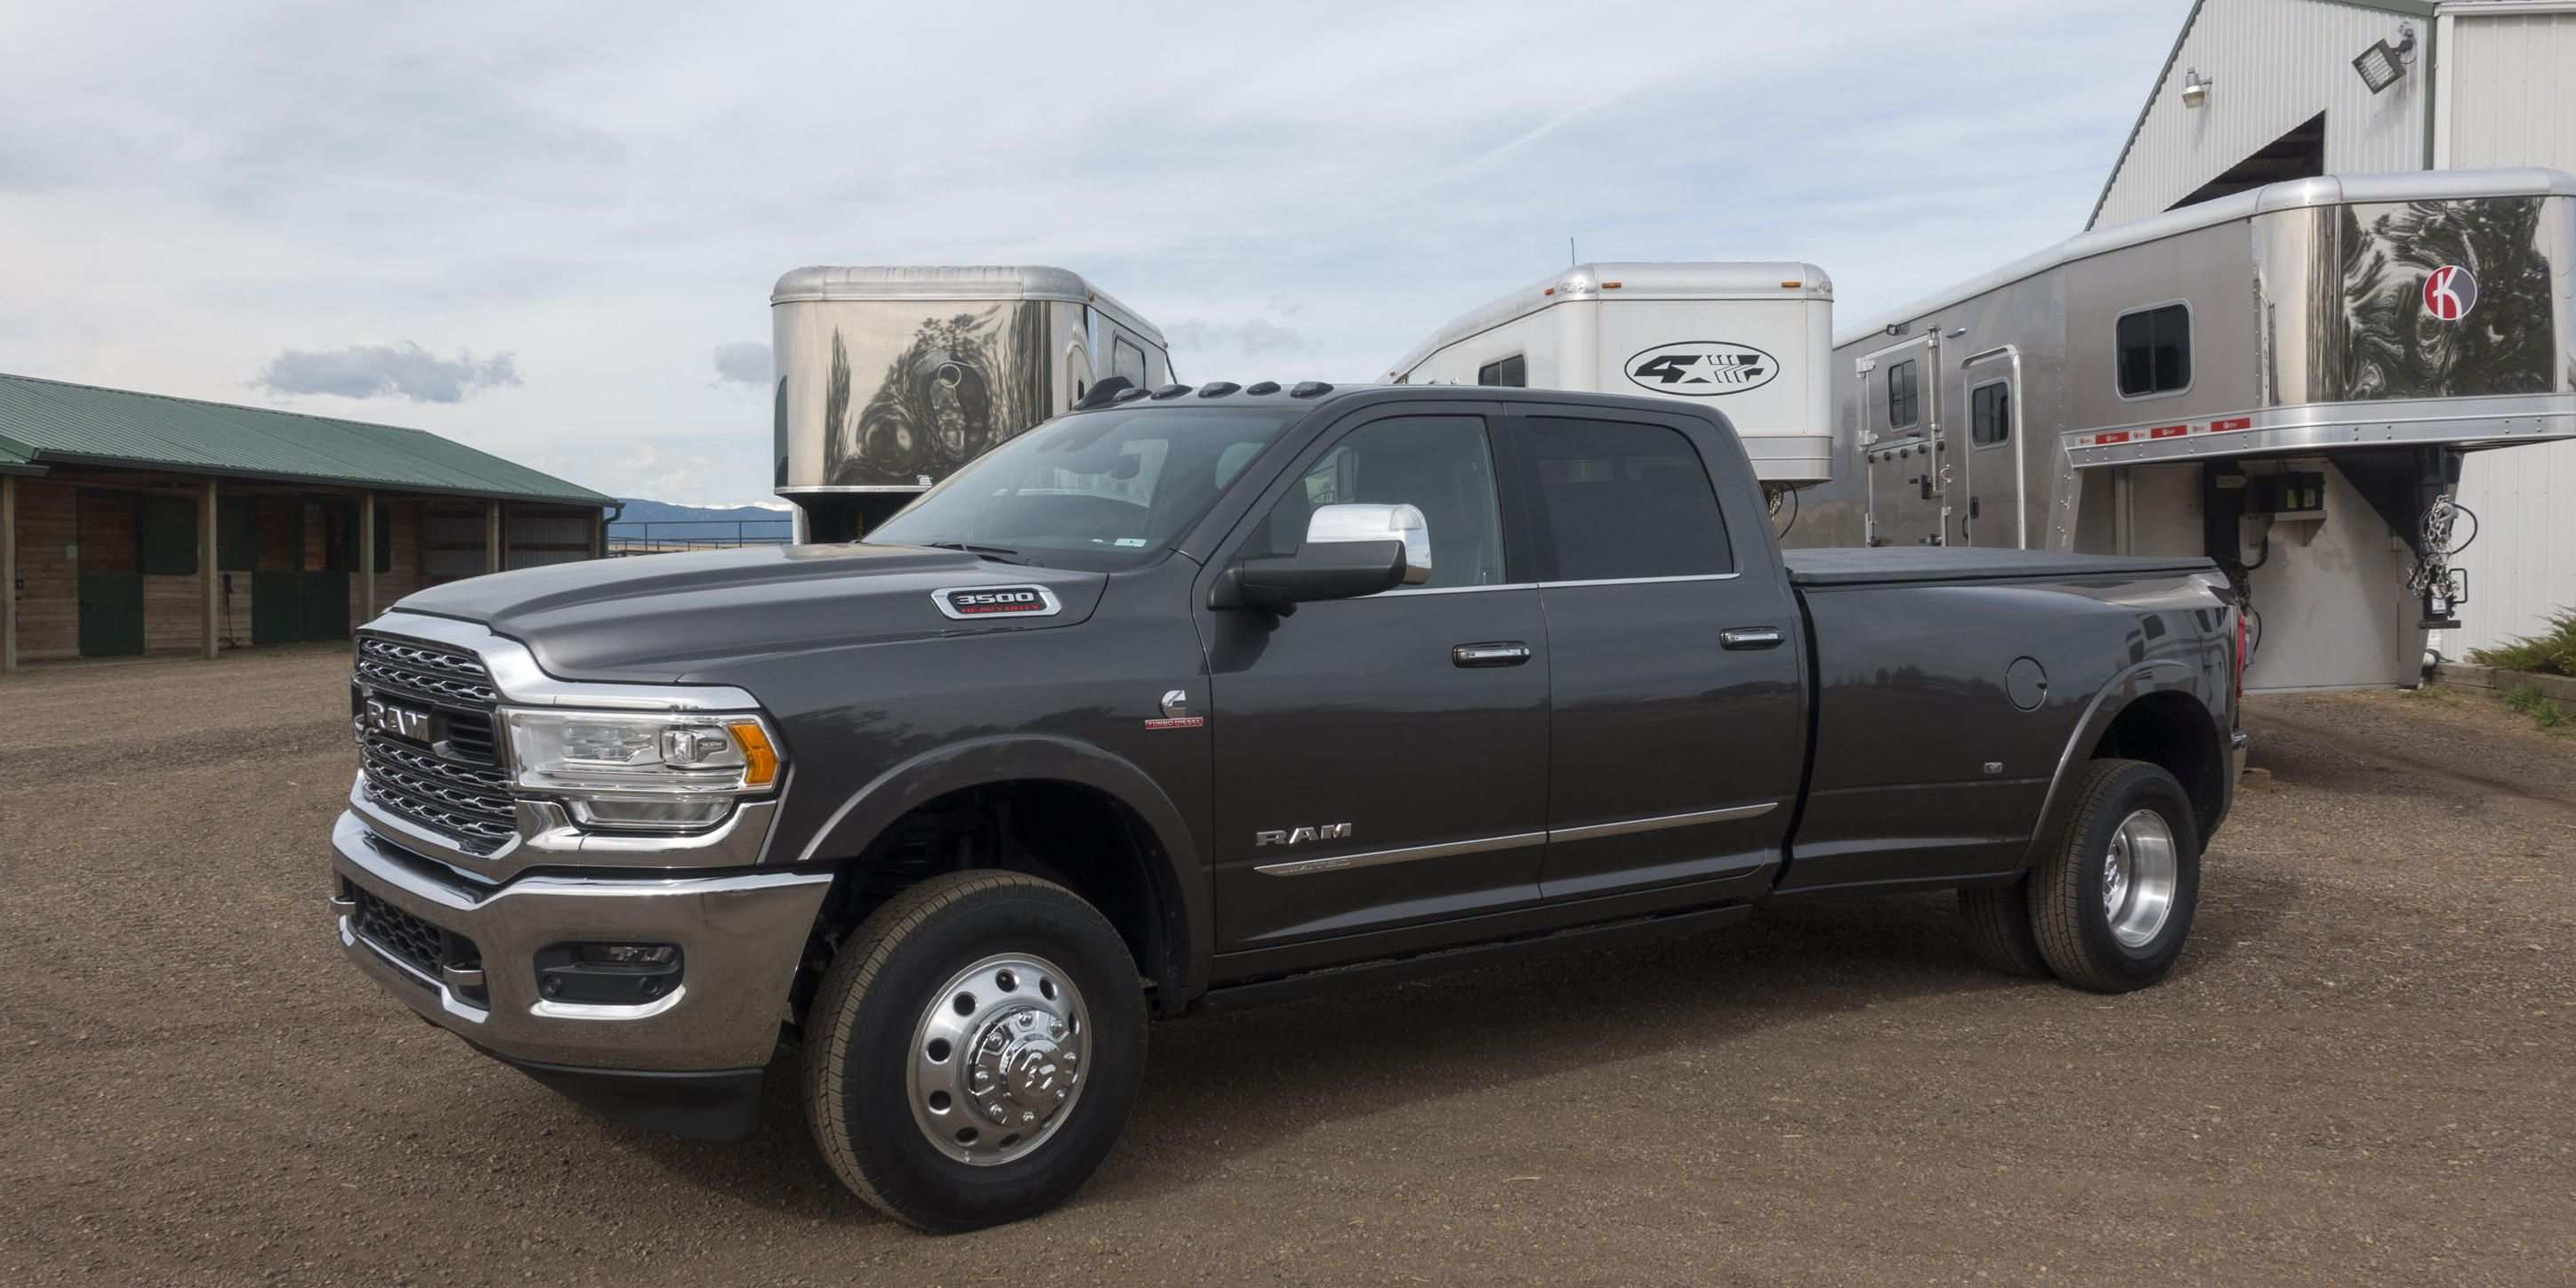 83 The Best 2020 Dodge Ram 3500 Pictures